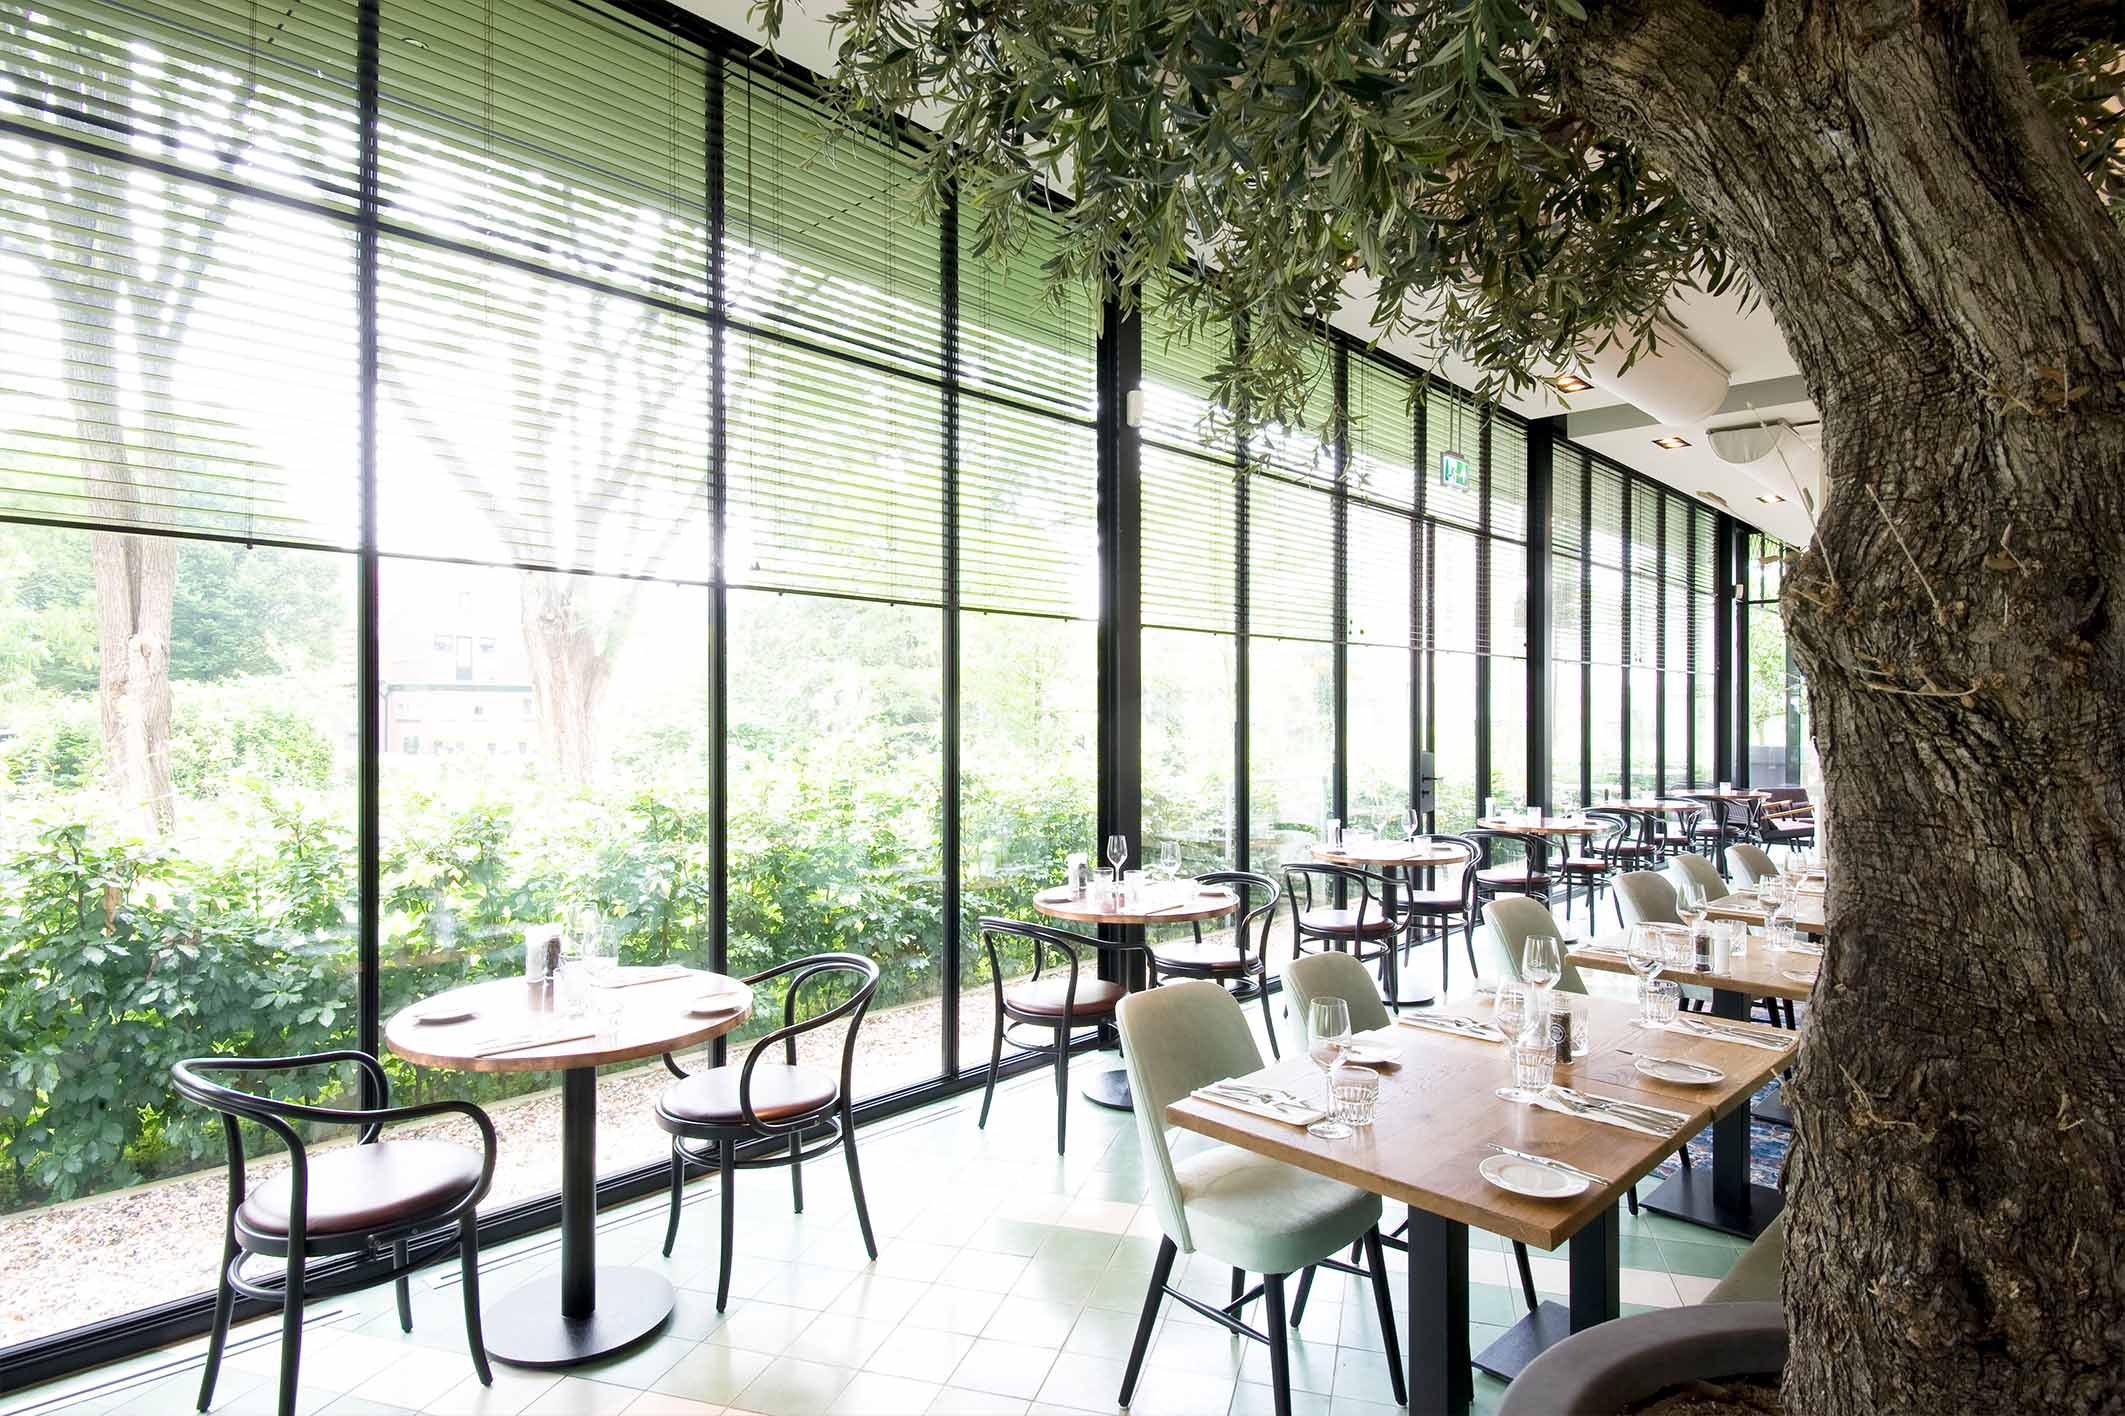 modern restaurant with steel framed glass walls and windows